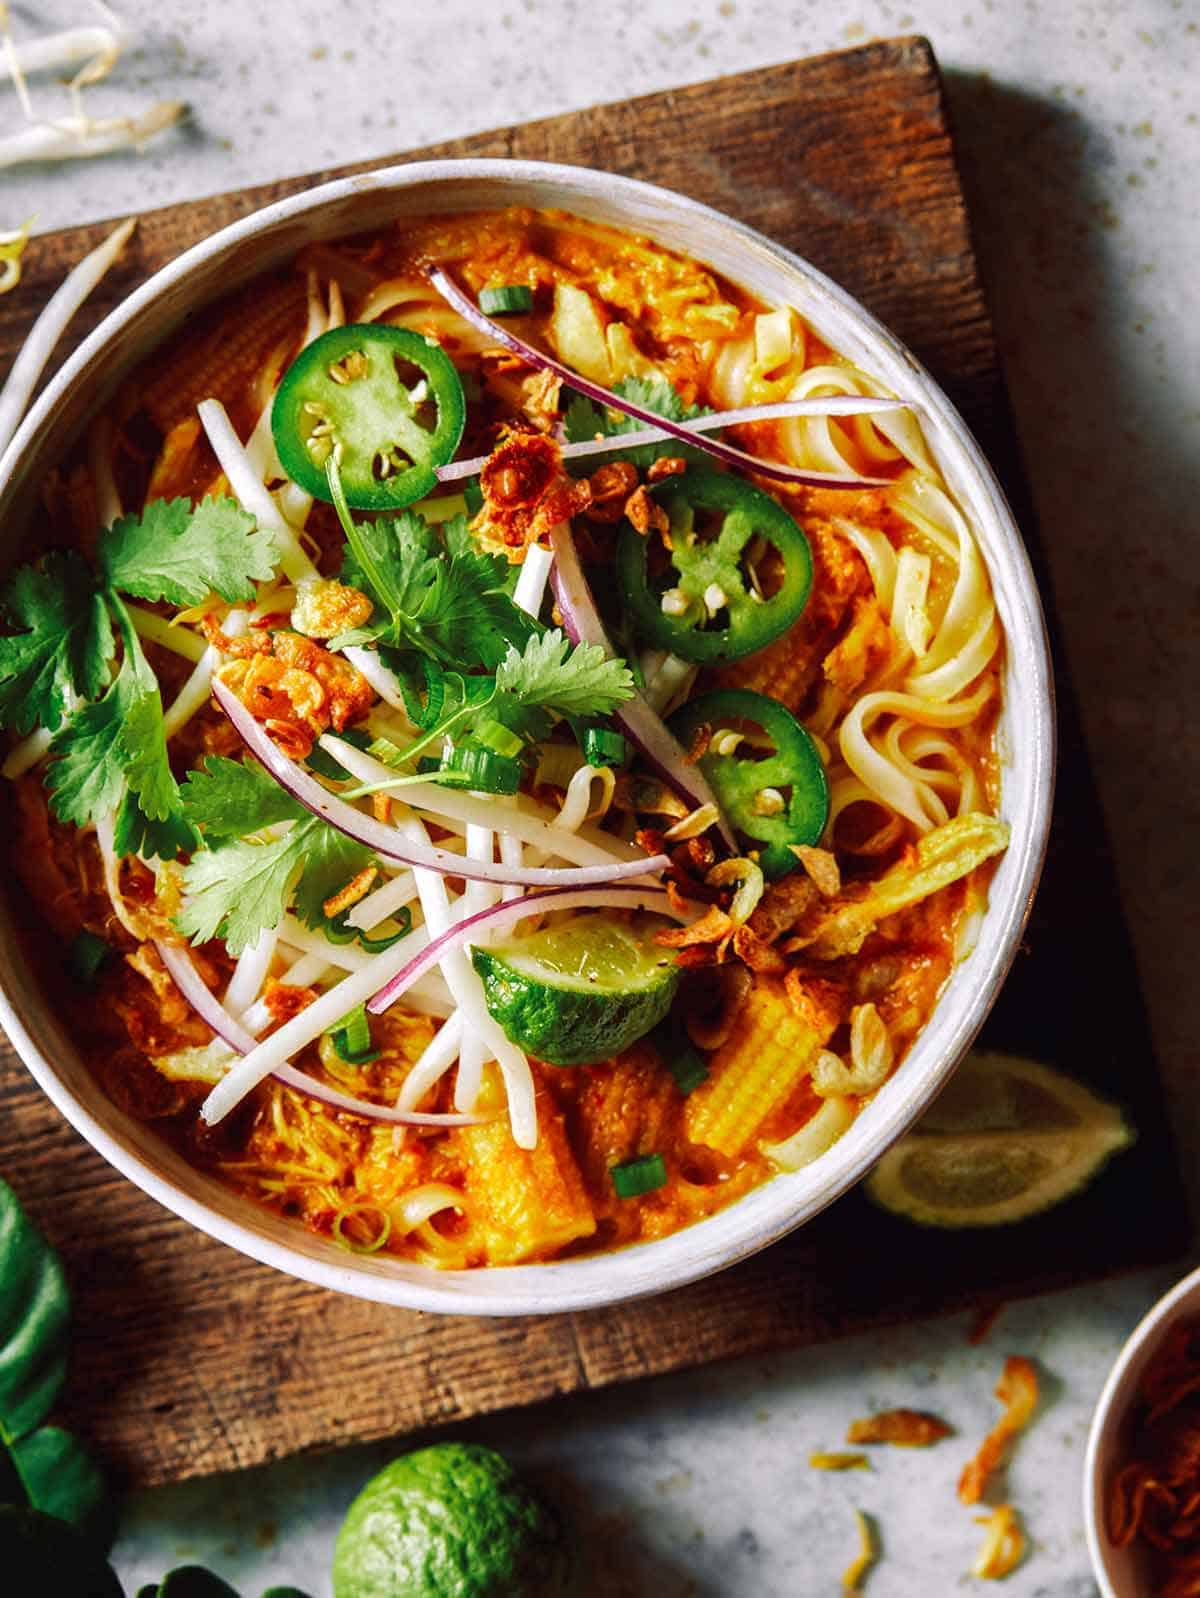 Spicy chicken laksa in a bowl on a cutting board.